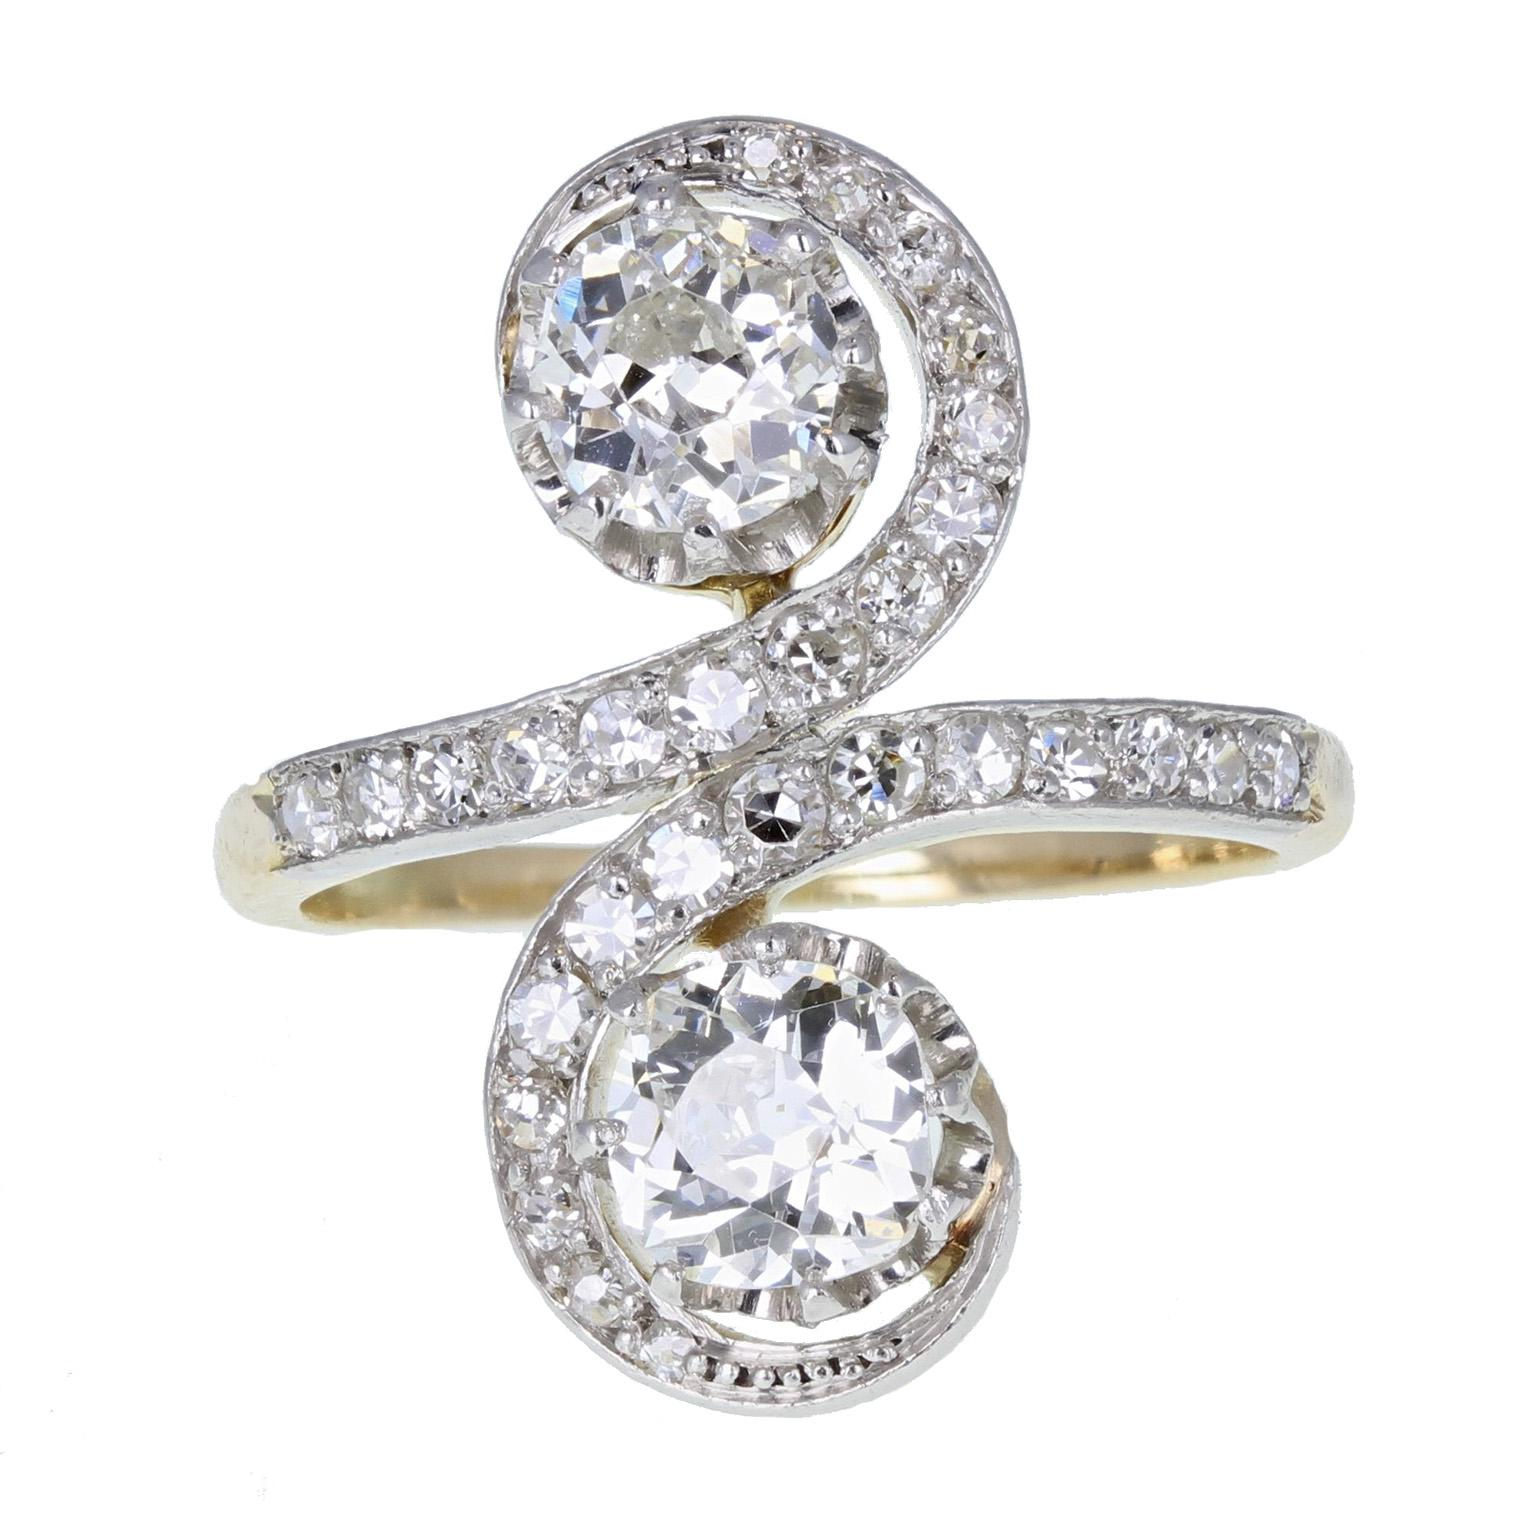 Antique Victorian Diamond Toi-et-Moi Two-Stone Twist Ring